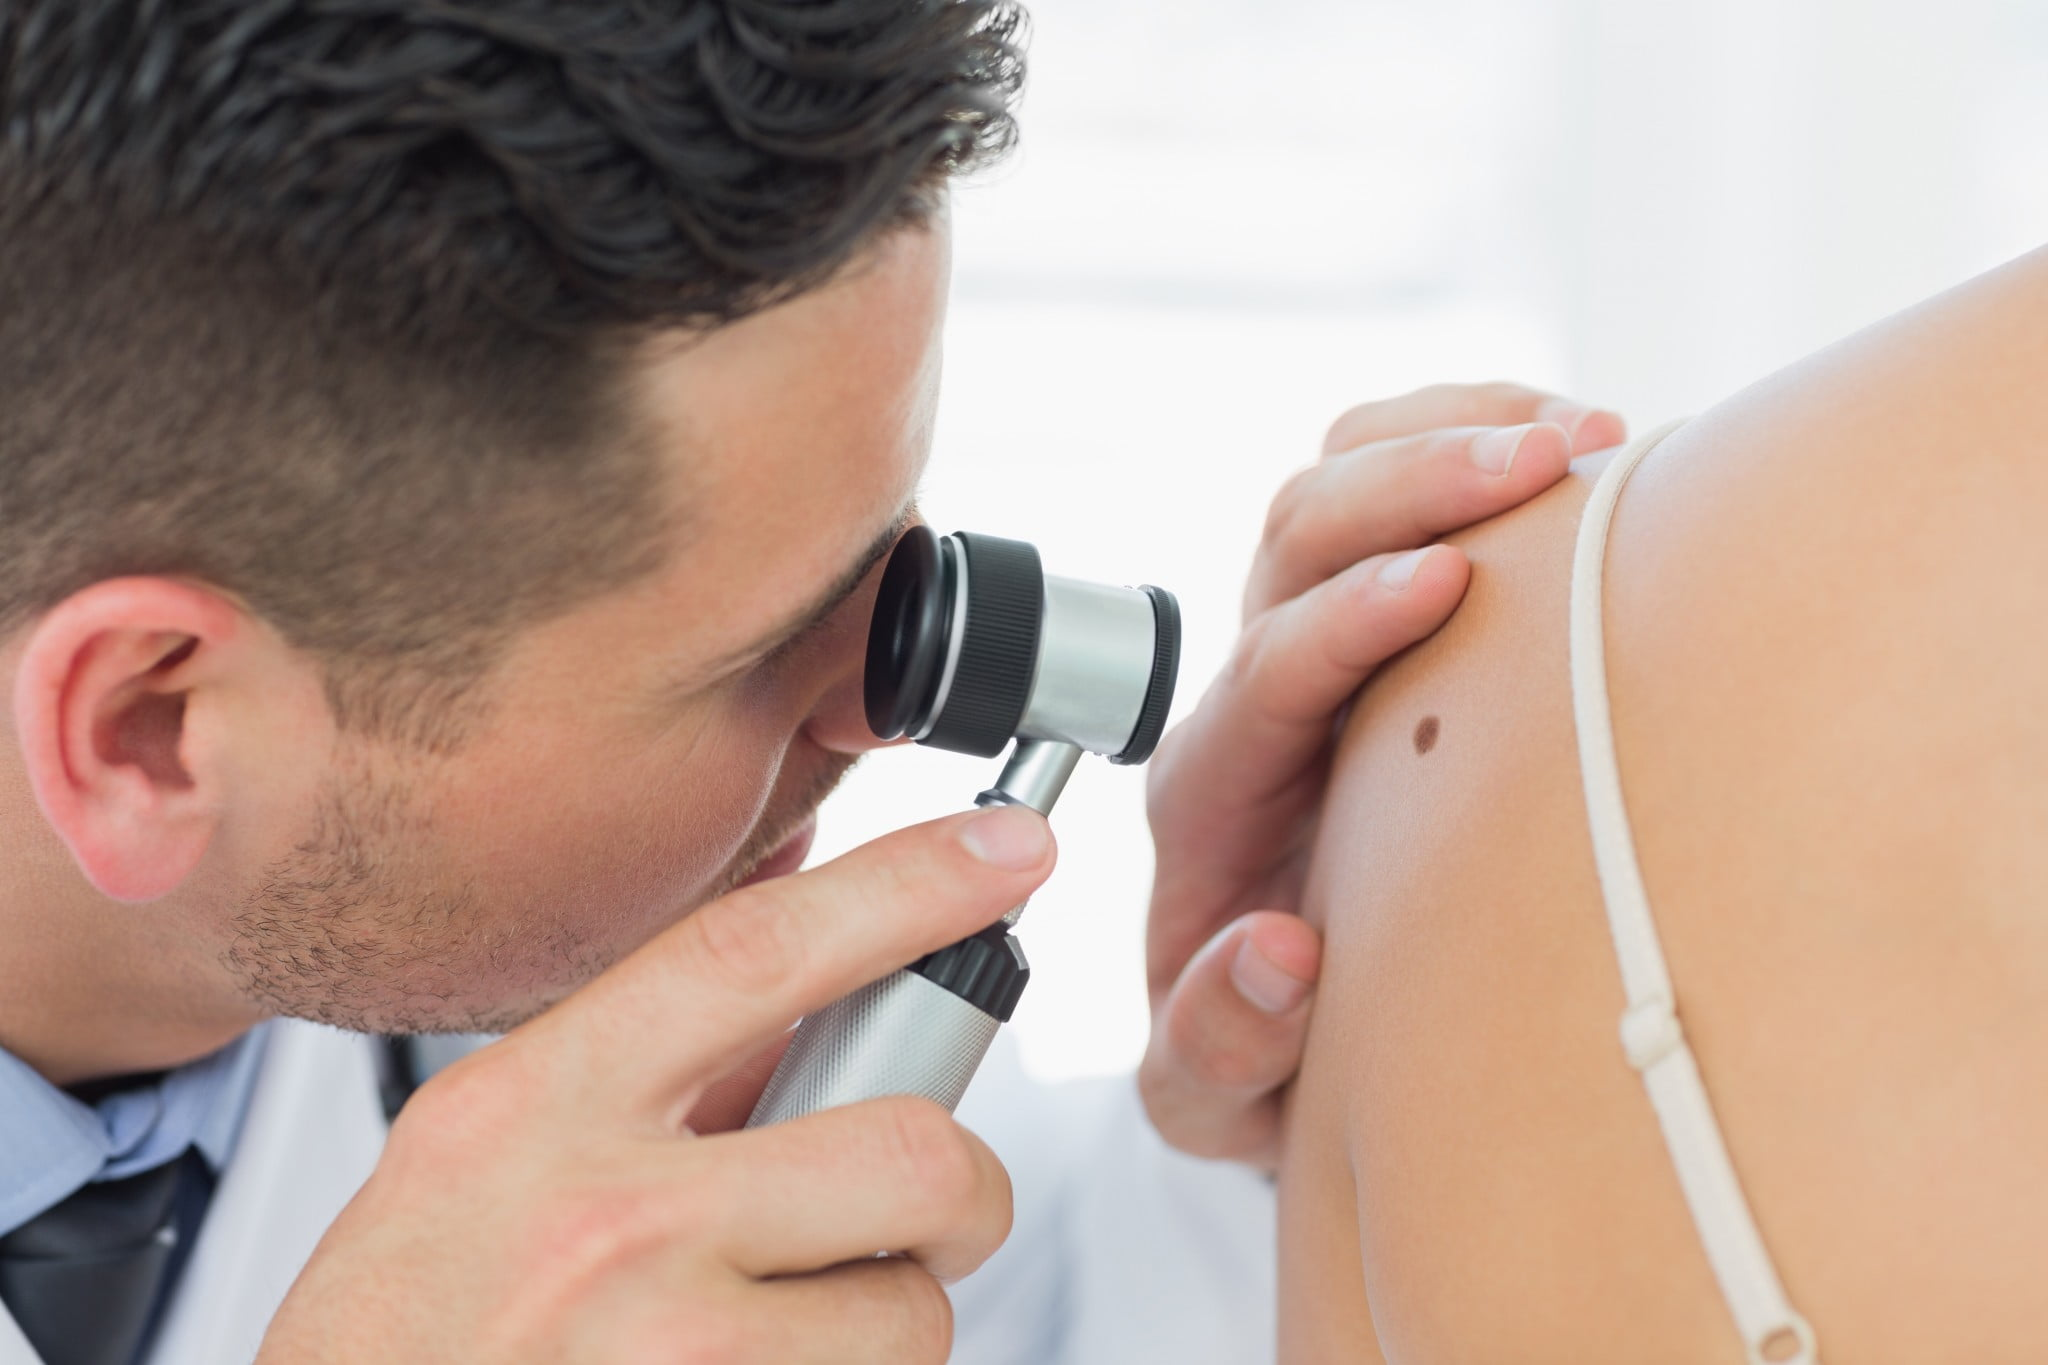 melanoma: dermatologist examines mole on woman's shoulder